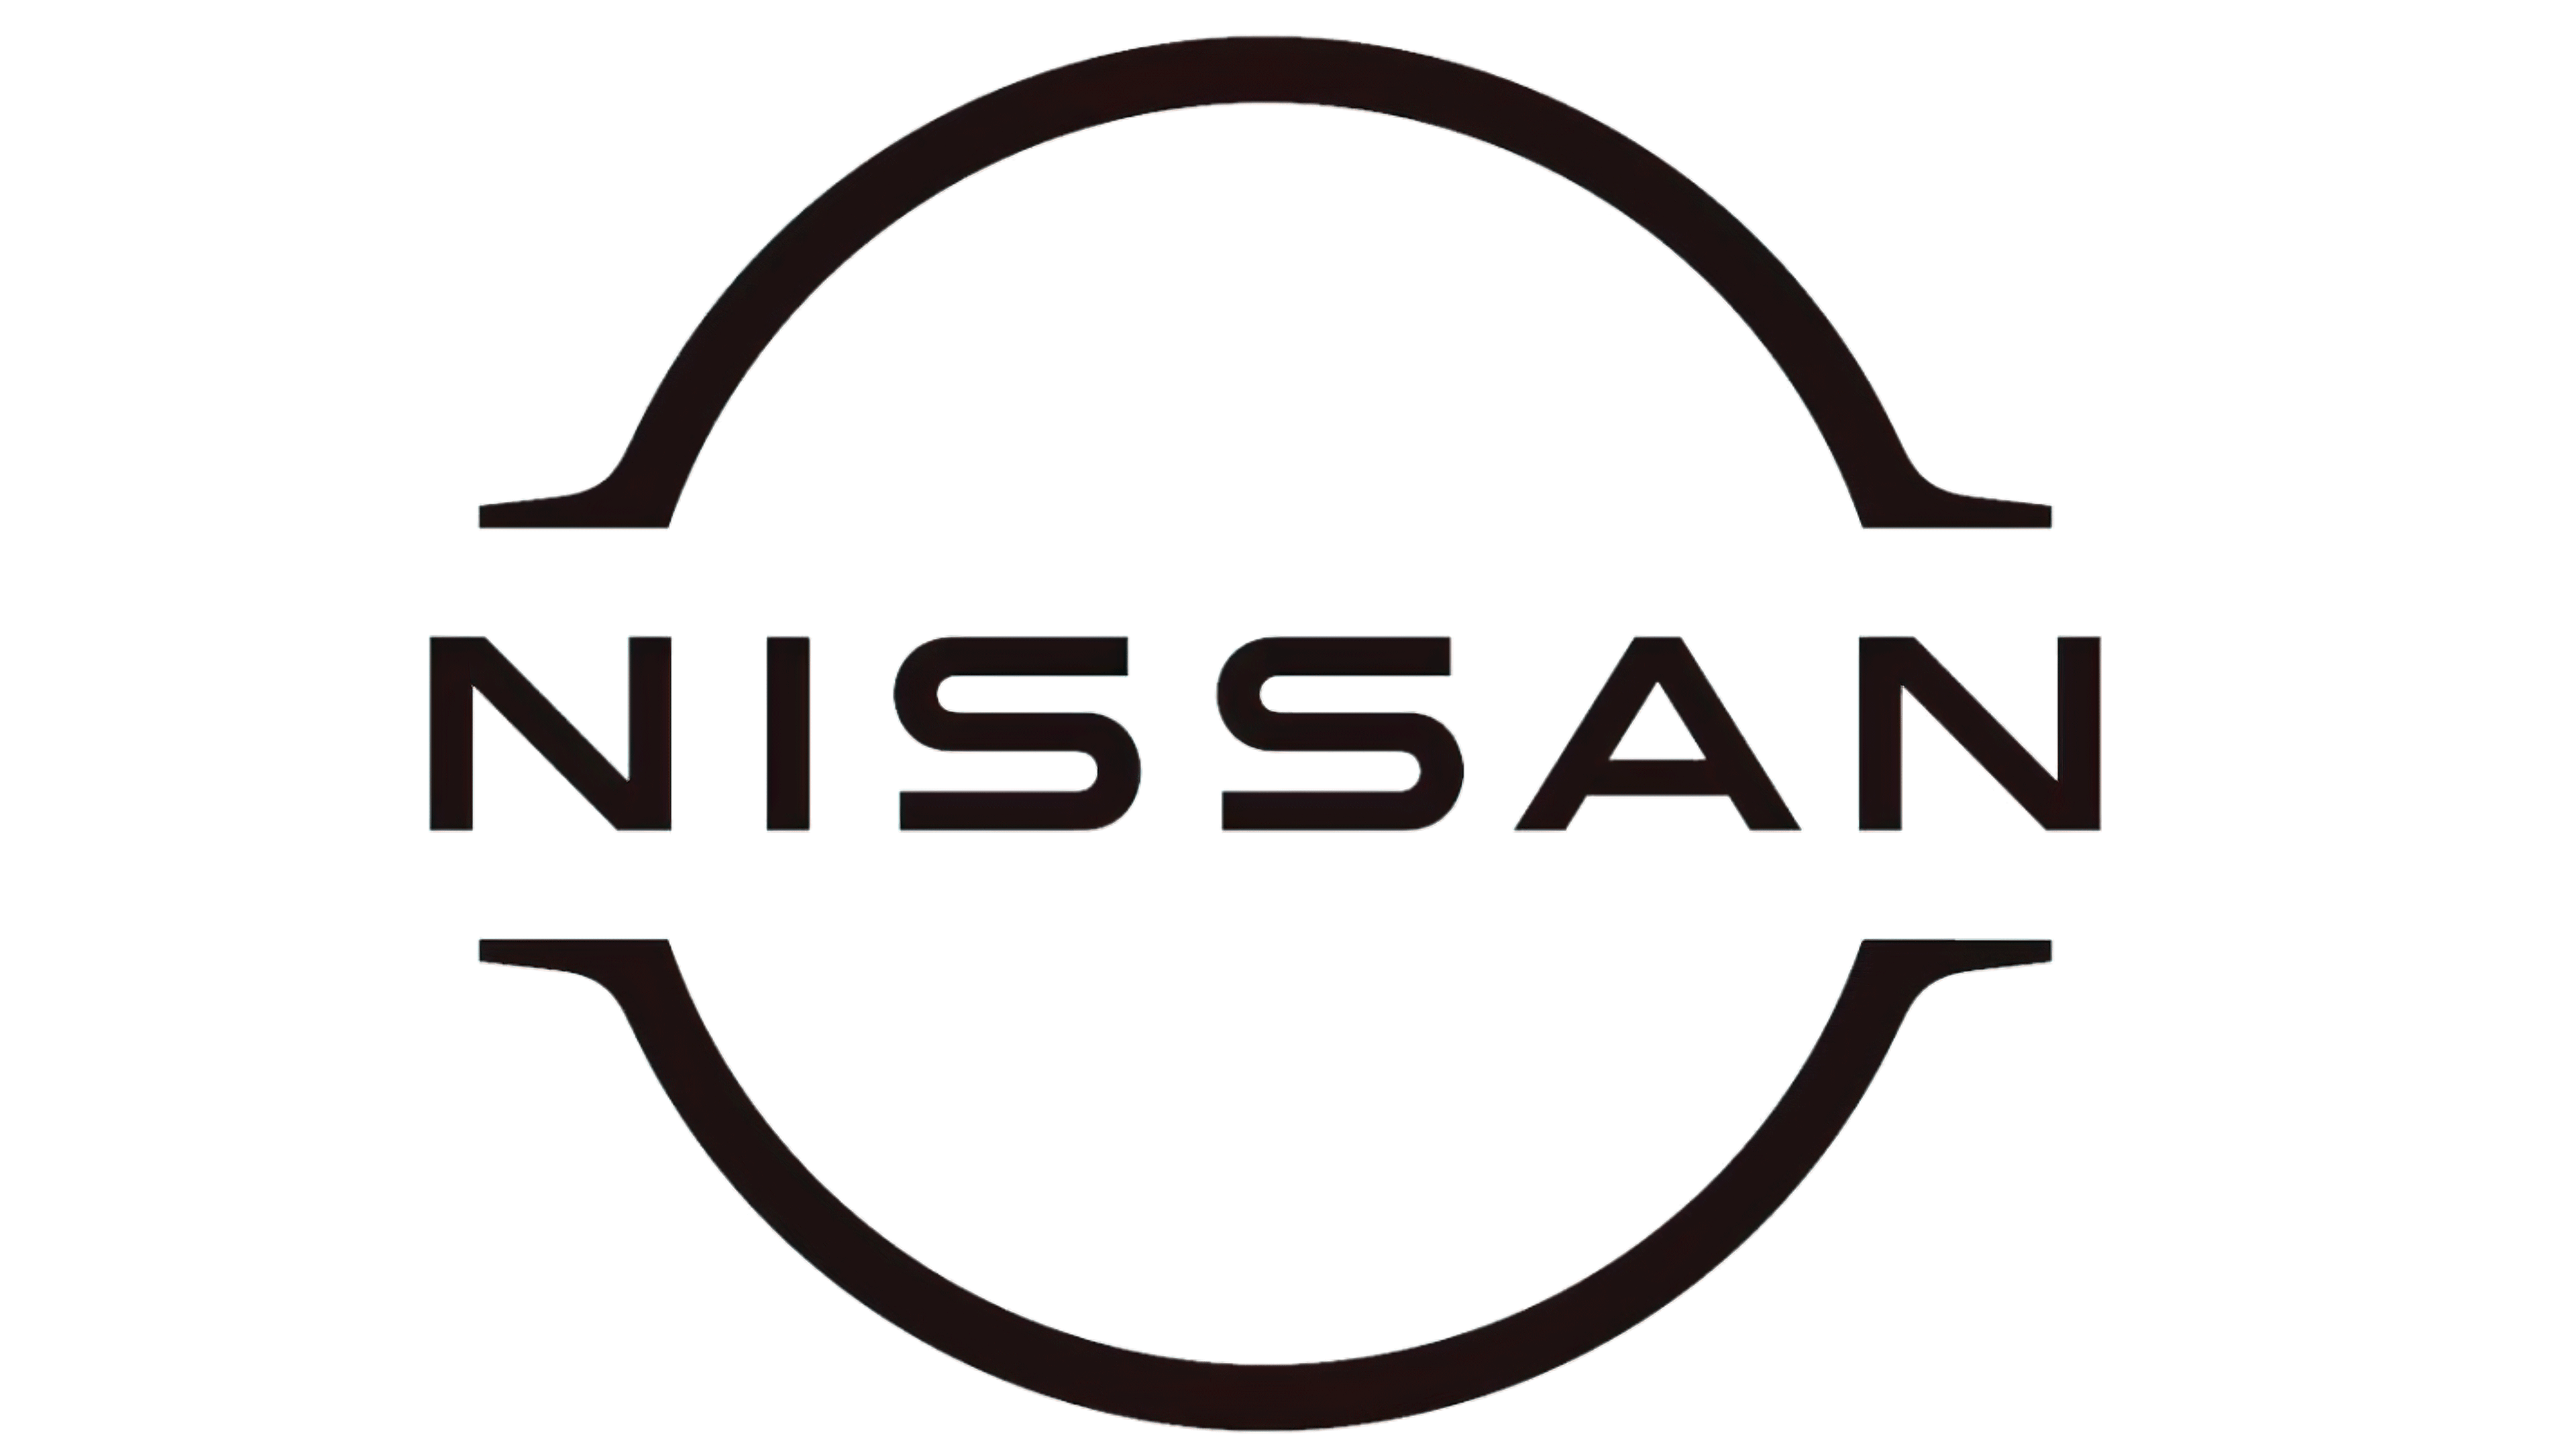 Nissan Logo | The Most Famous Brands And Company Logos In The World - Nissan Logo PNG